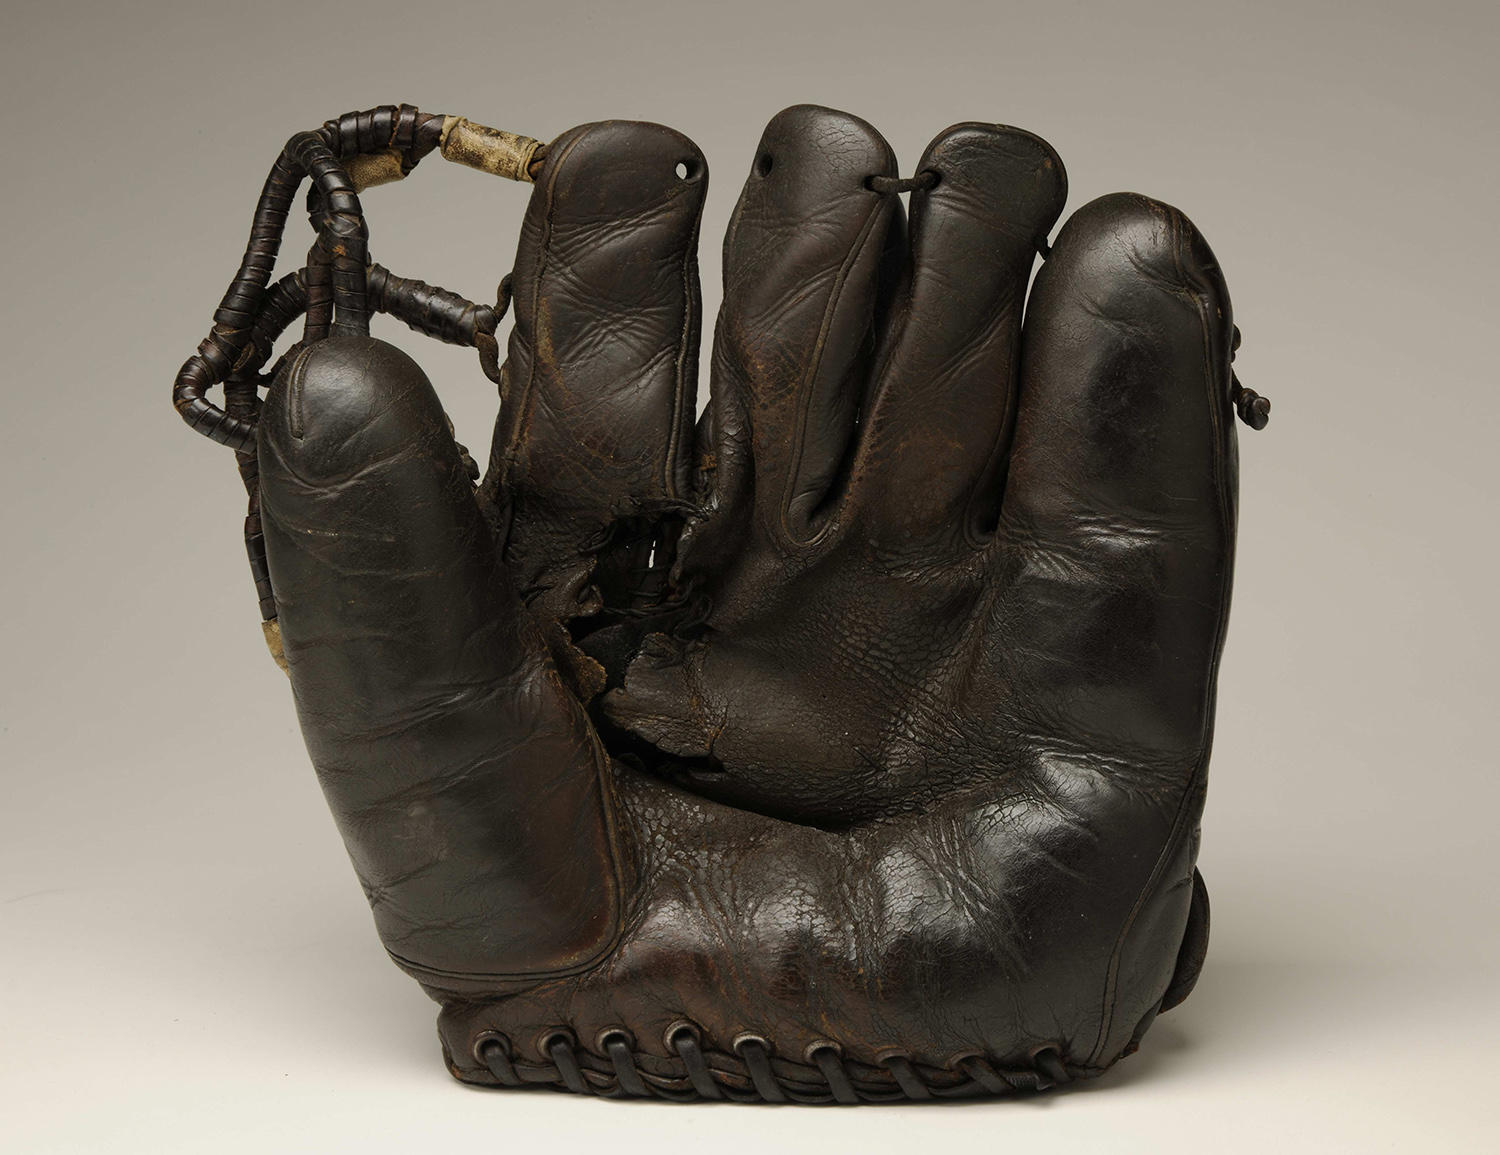 Joe DiMaggio used this glove during the 1938 and 1939 seasons, when he led the Yankees to back-to-back World Series wins. (Milo Stewart Jr. / National Baseball Hall of Fame and Museum)